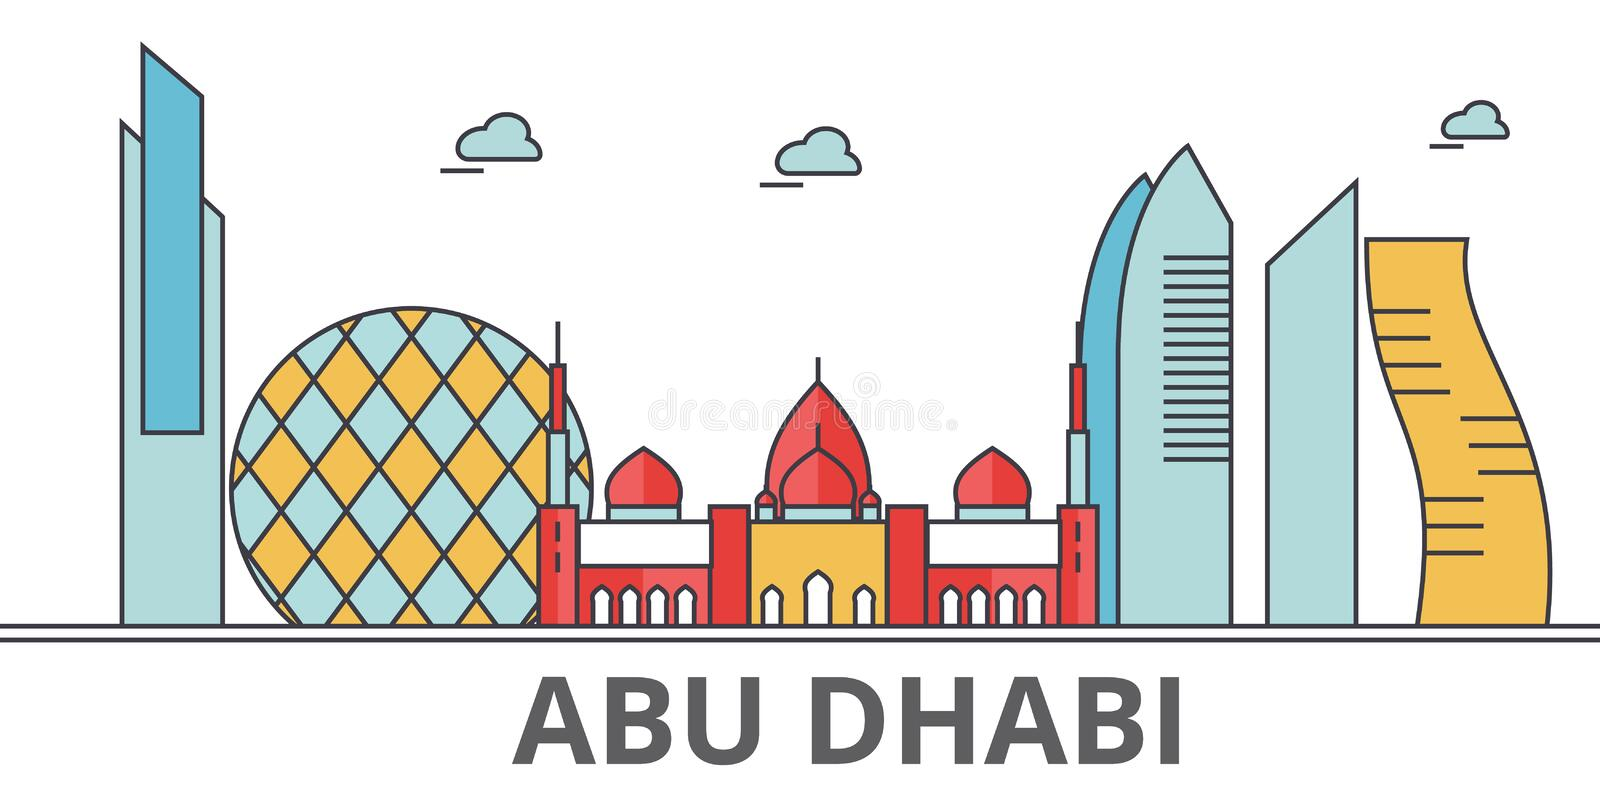 Abu Dhabi city skyline. Buildings, streets, silhouette, architecture, landscape, panorama, landmarks. Editable strokes. Flat design line vector illustration royalty free illustration